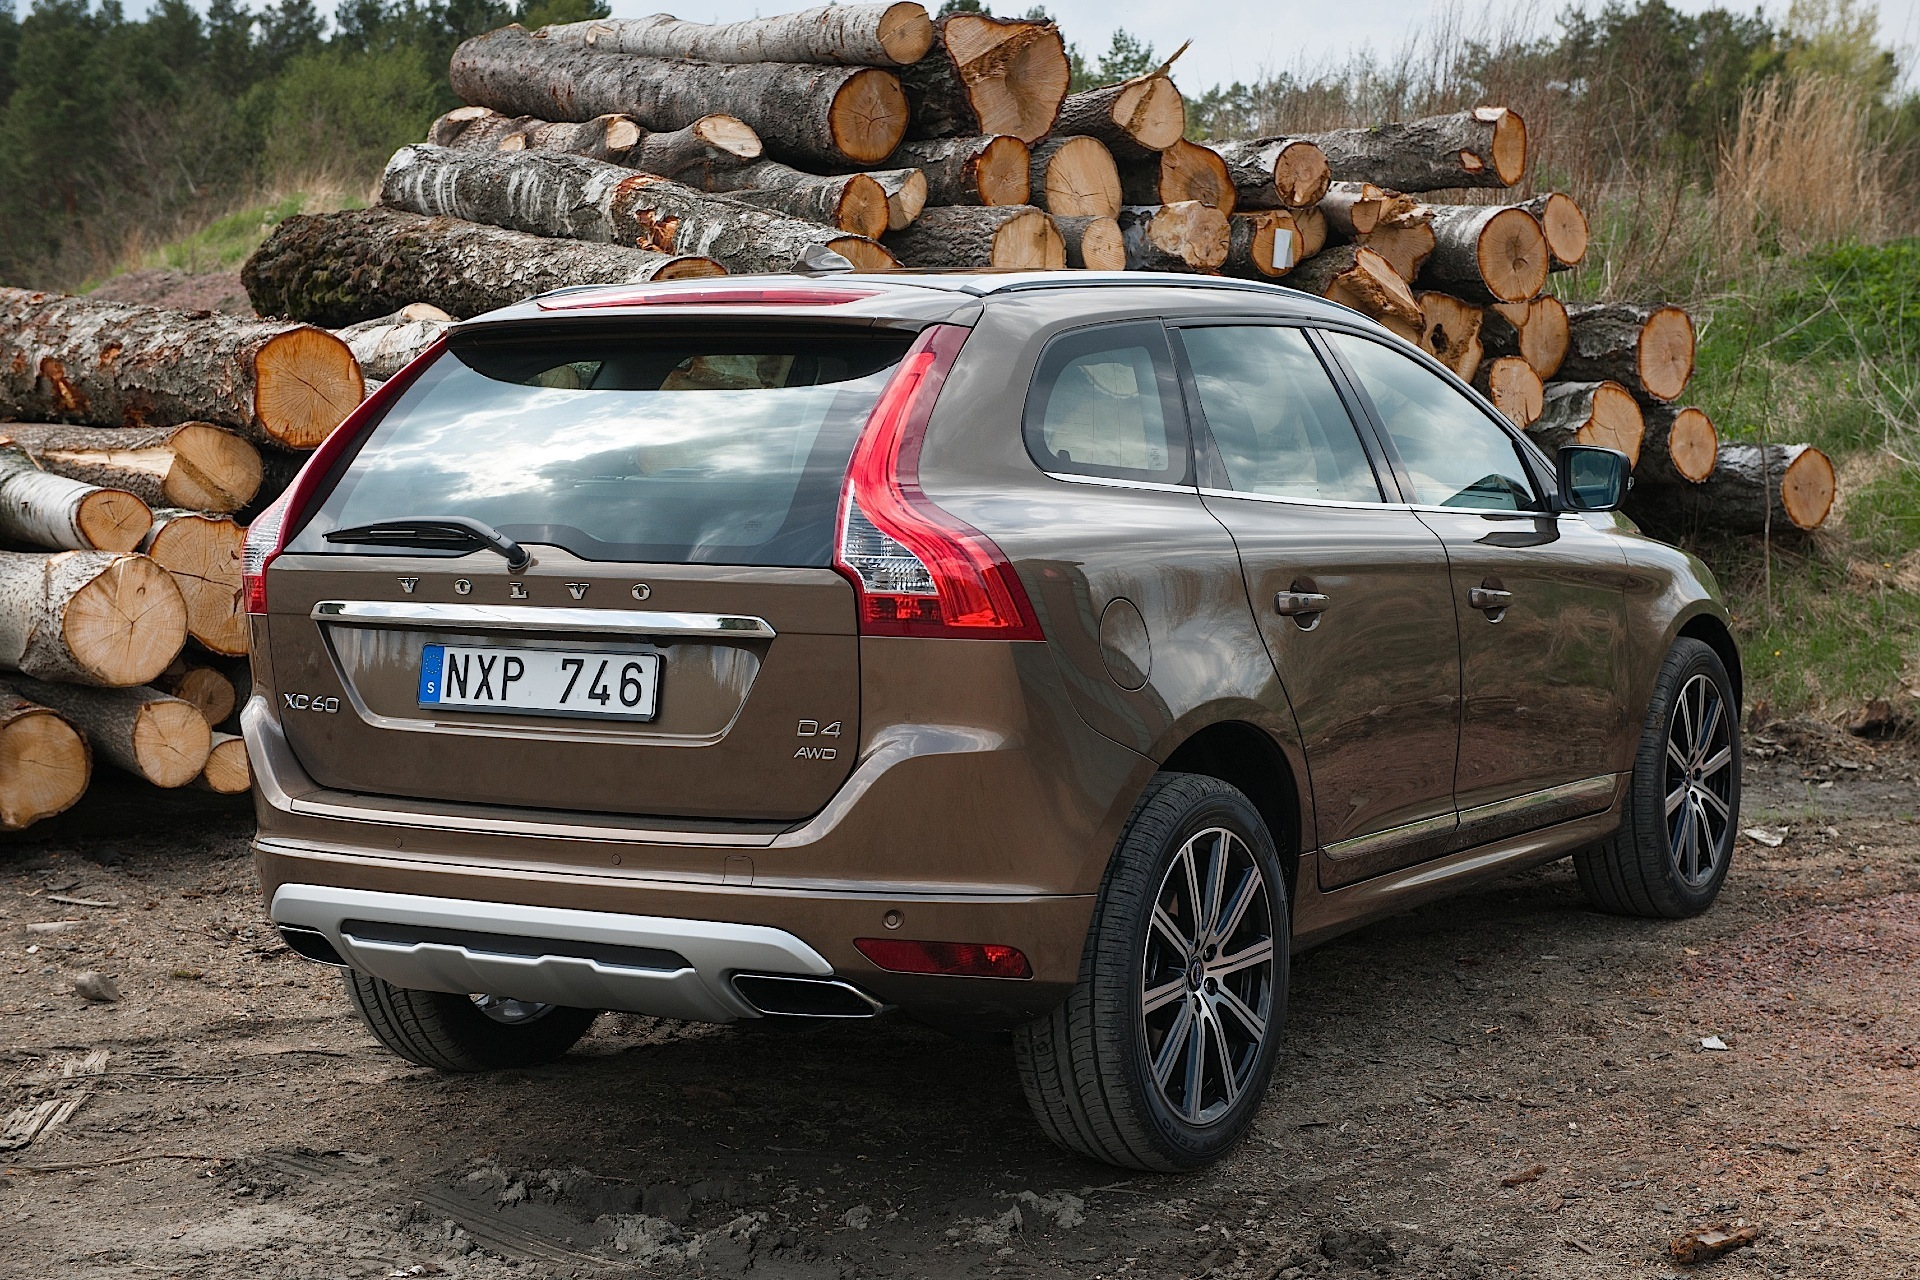 volvo xc60 specs 2013 2014 2015 2016 2017 autoevolution. Black Bedroom Furniture Sets. Home Design Ideas